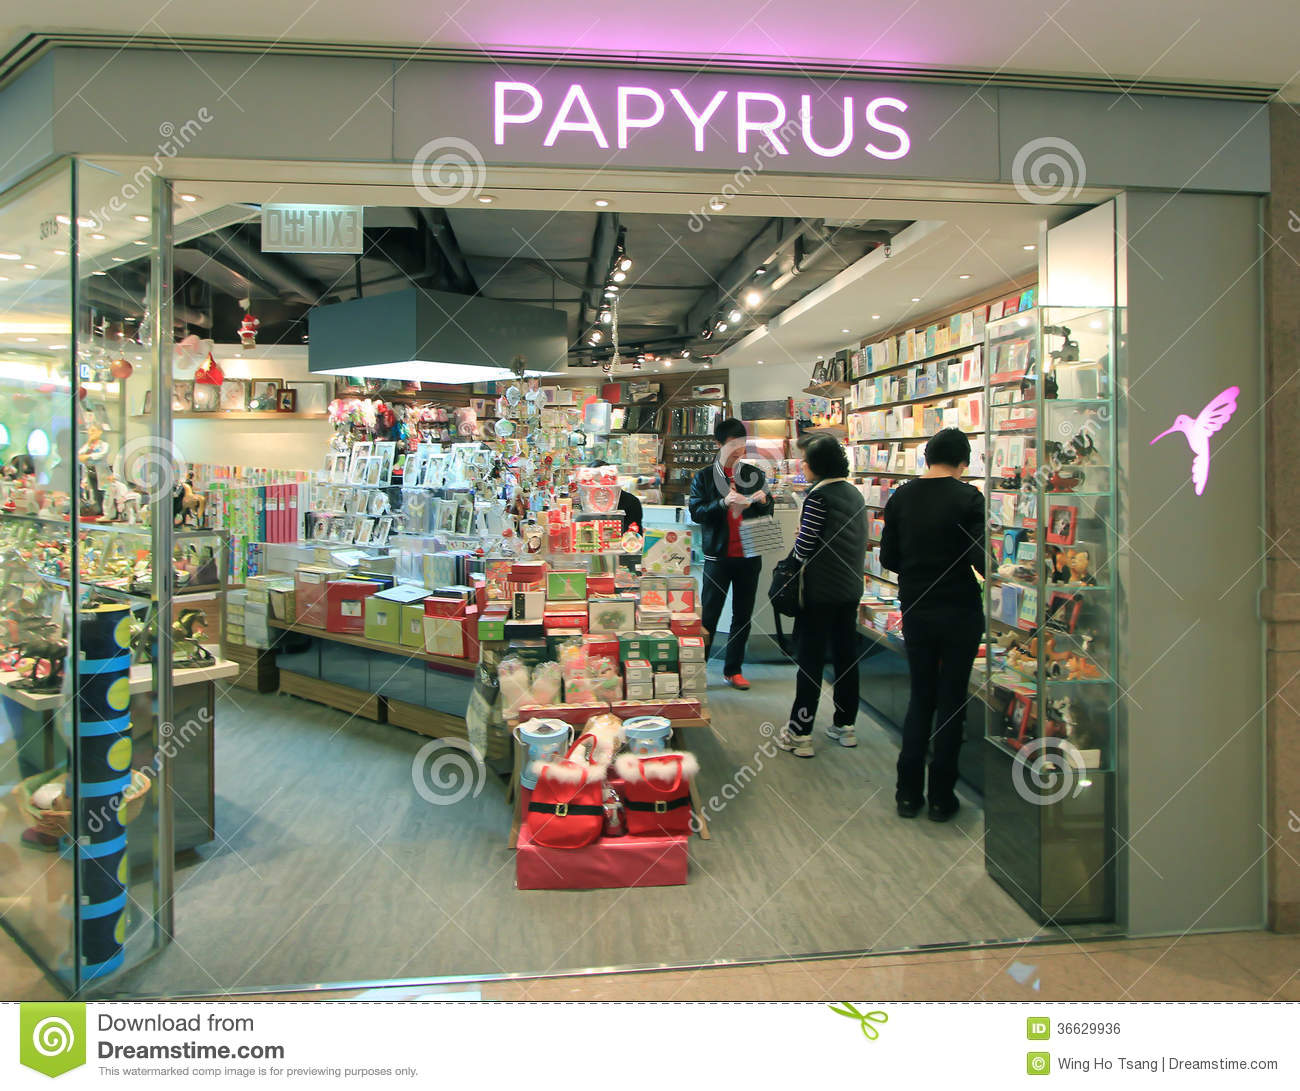 Hong Kong Shopping: Papyrus Shop In Hong Kong Editorial Photo. Image Of